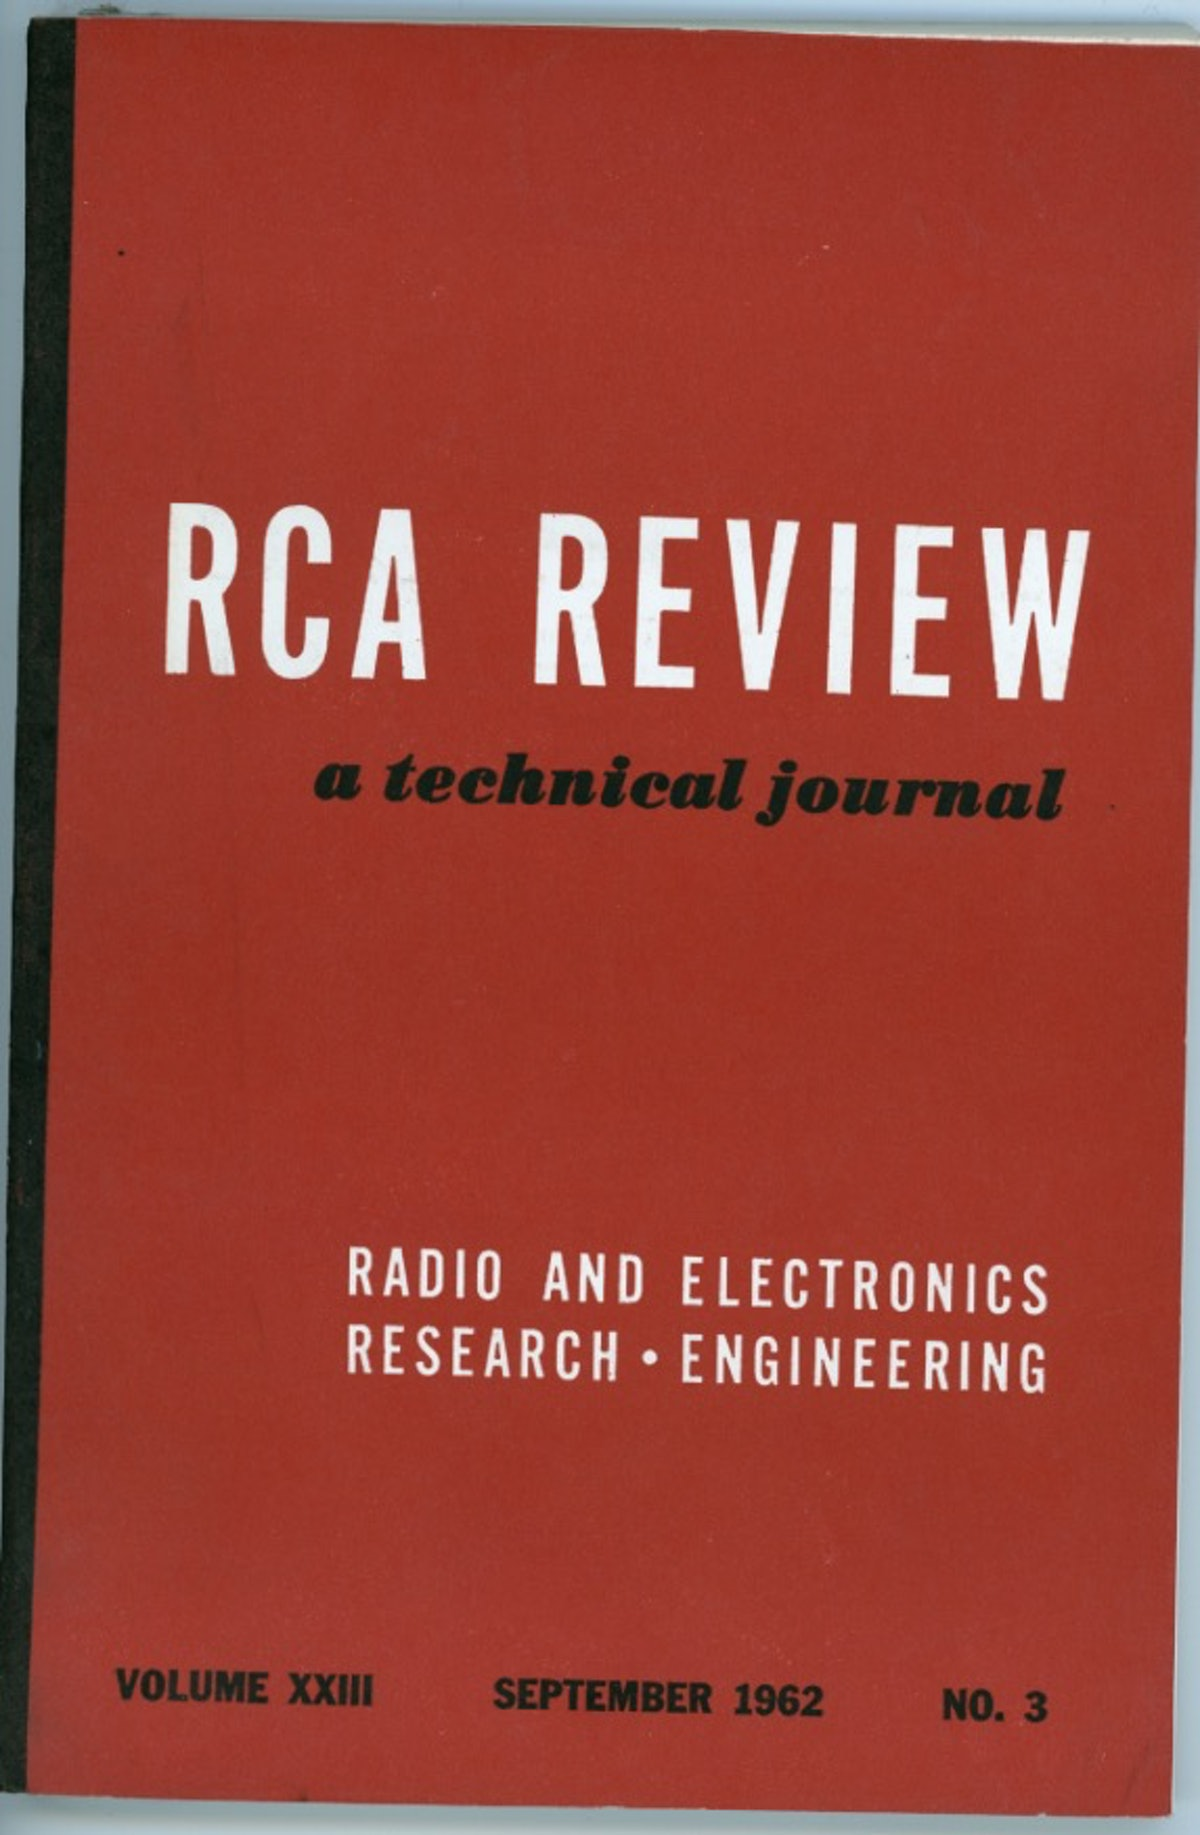 RCA Review: A technical journal